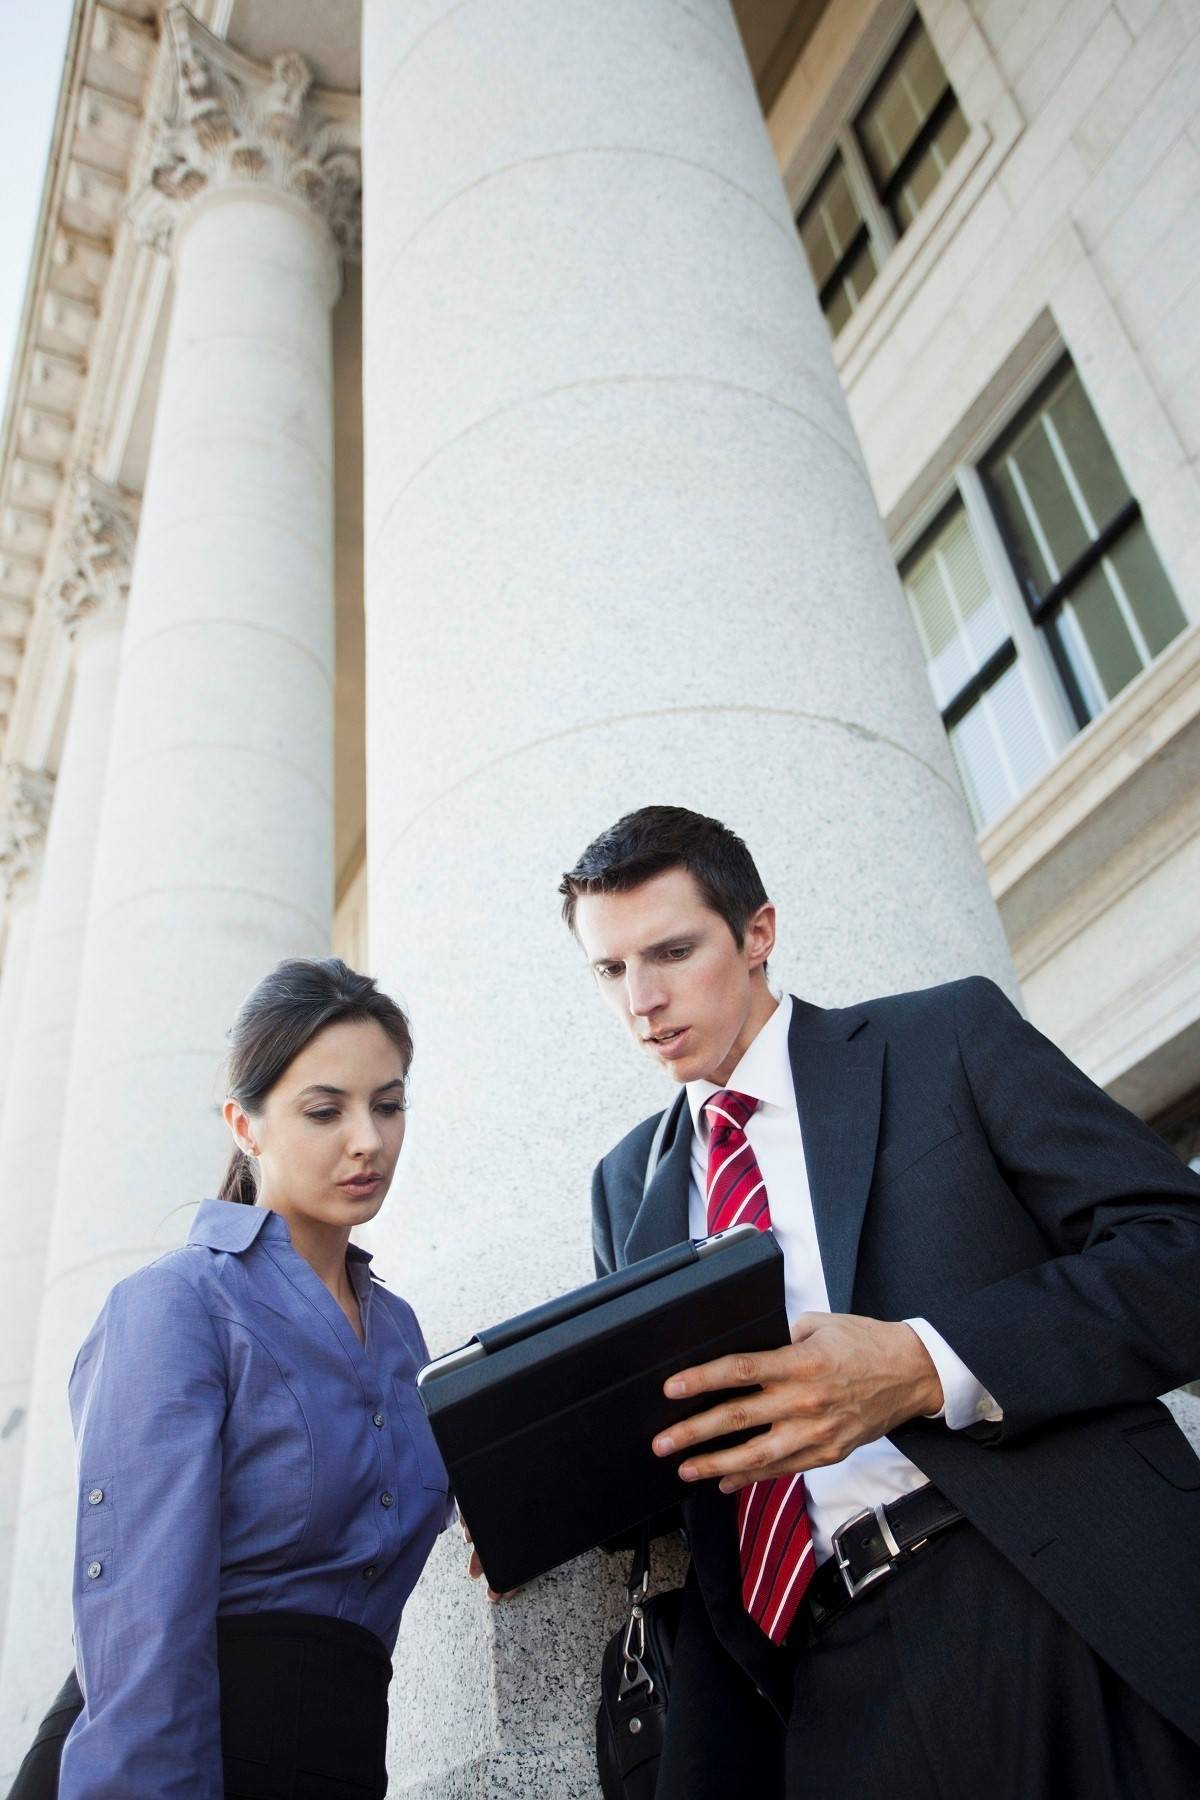 Two business people looking at a tablet on the steps of a building